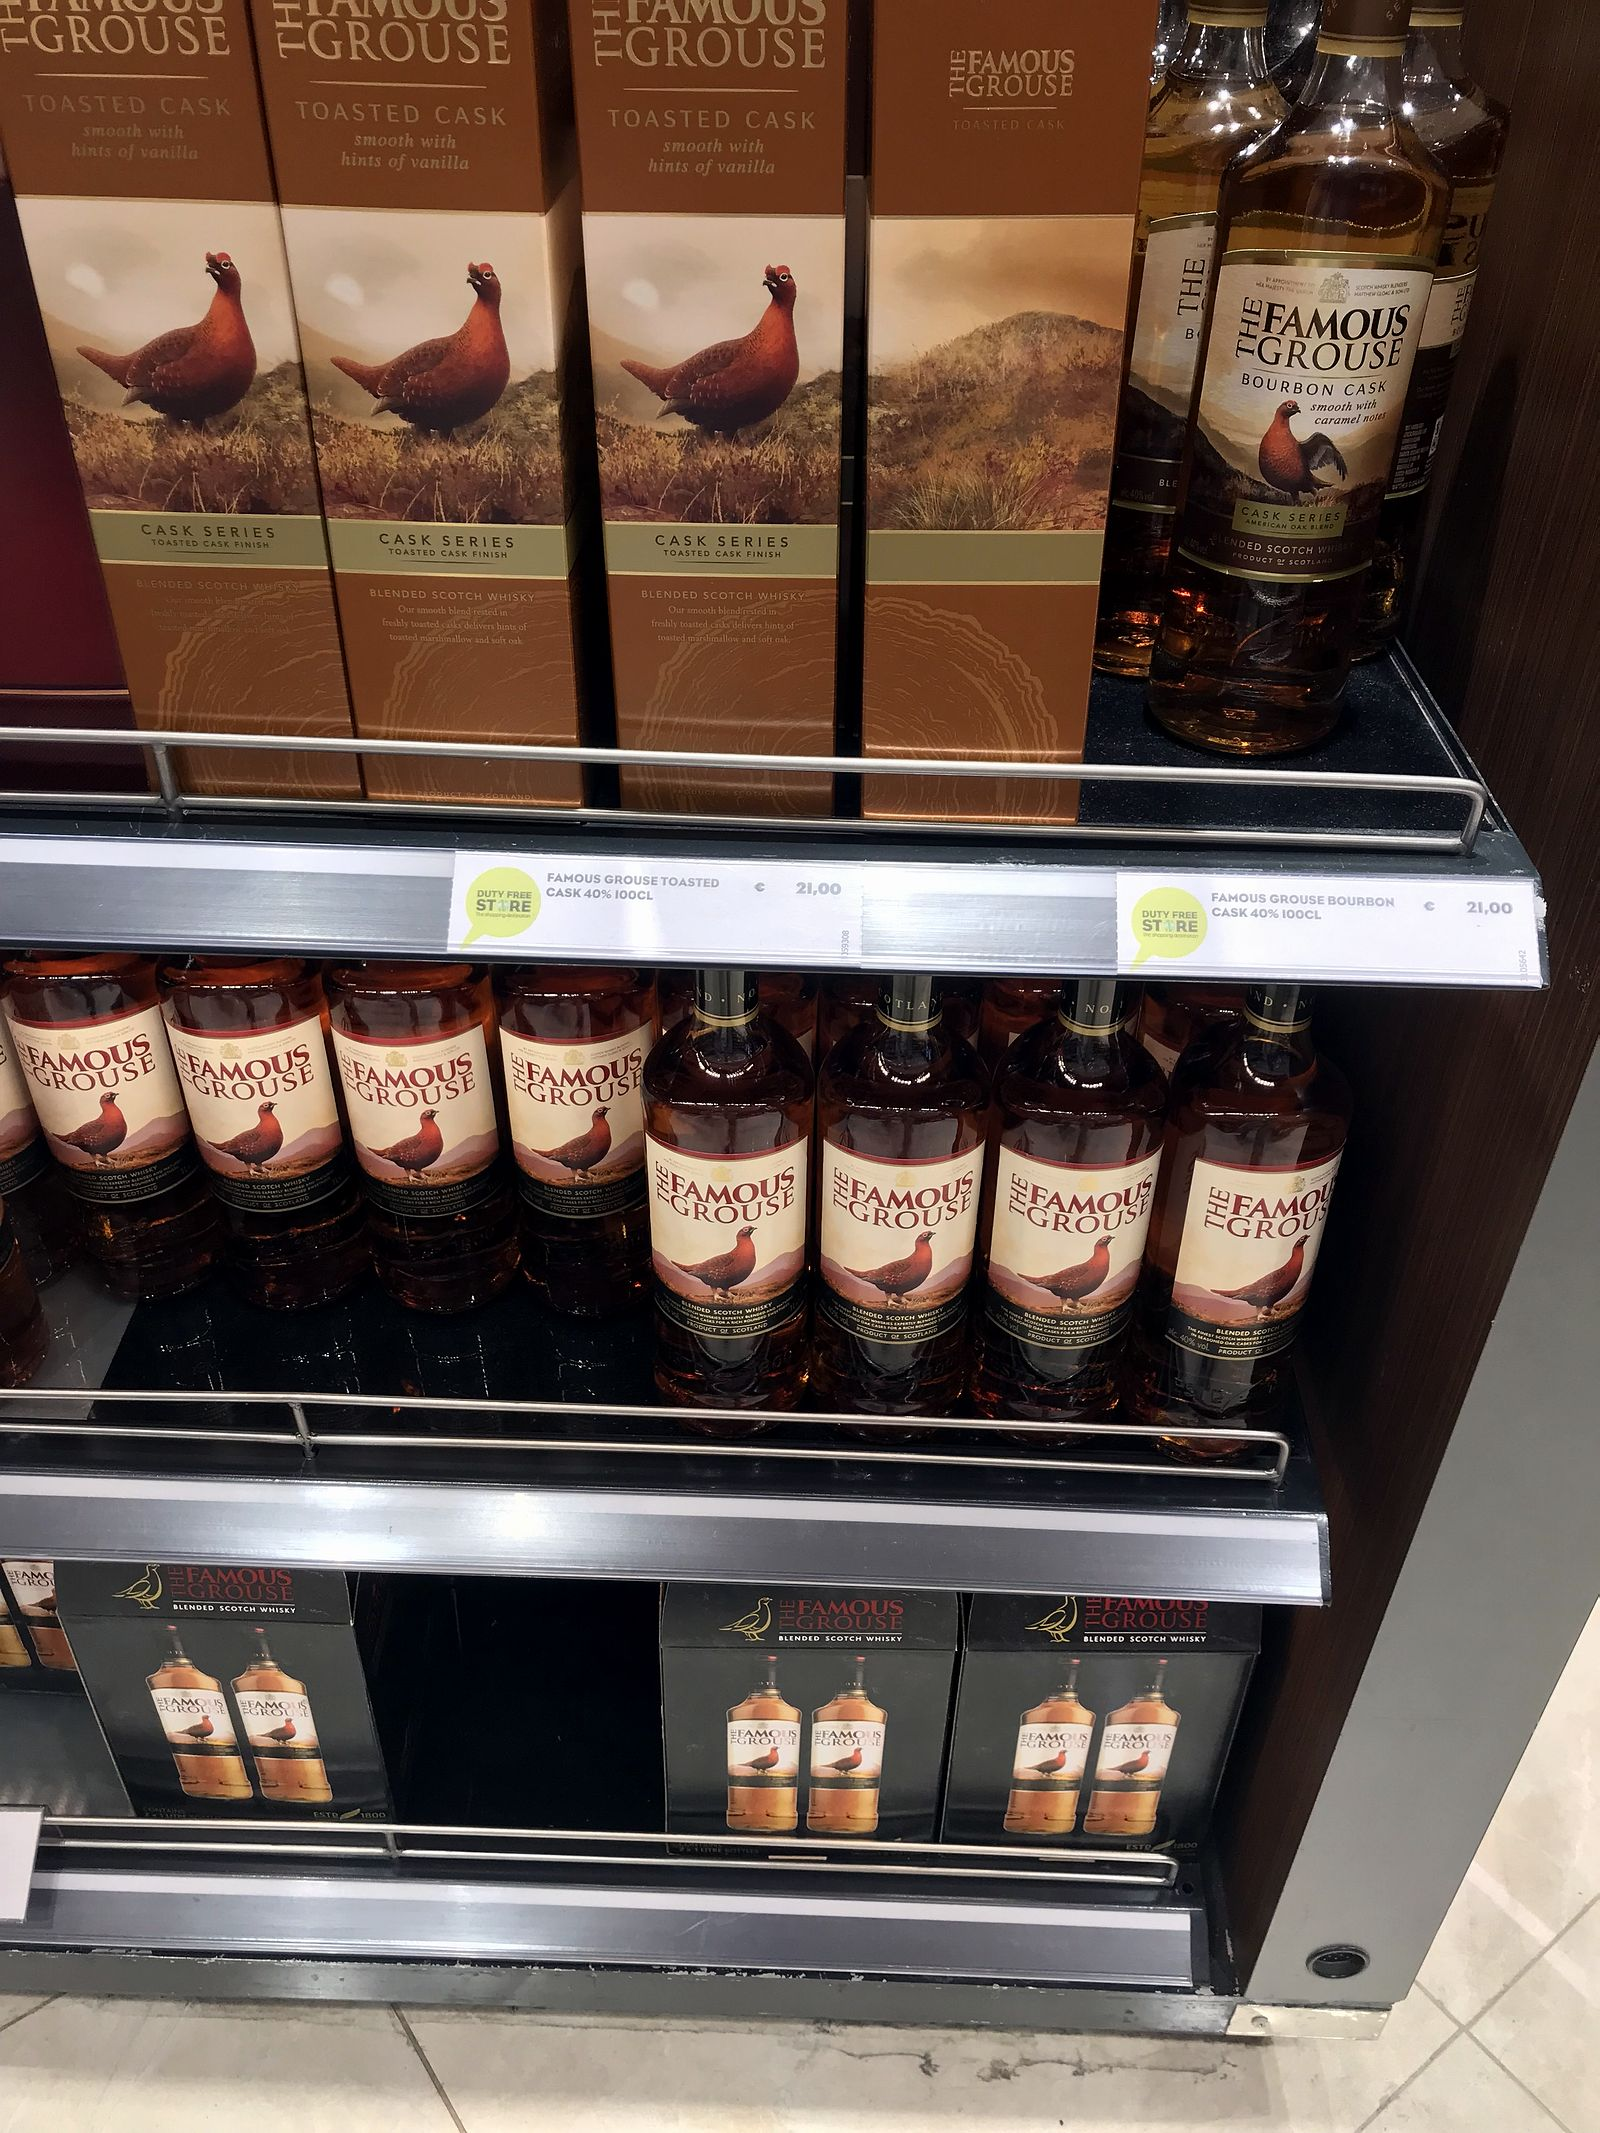 Duty free Antalya, august 2019, whiskey The Famous Grouse